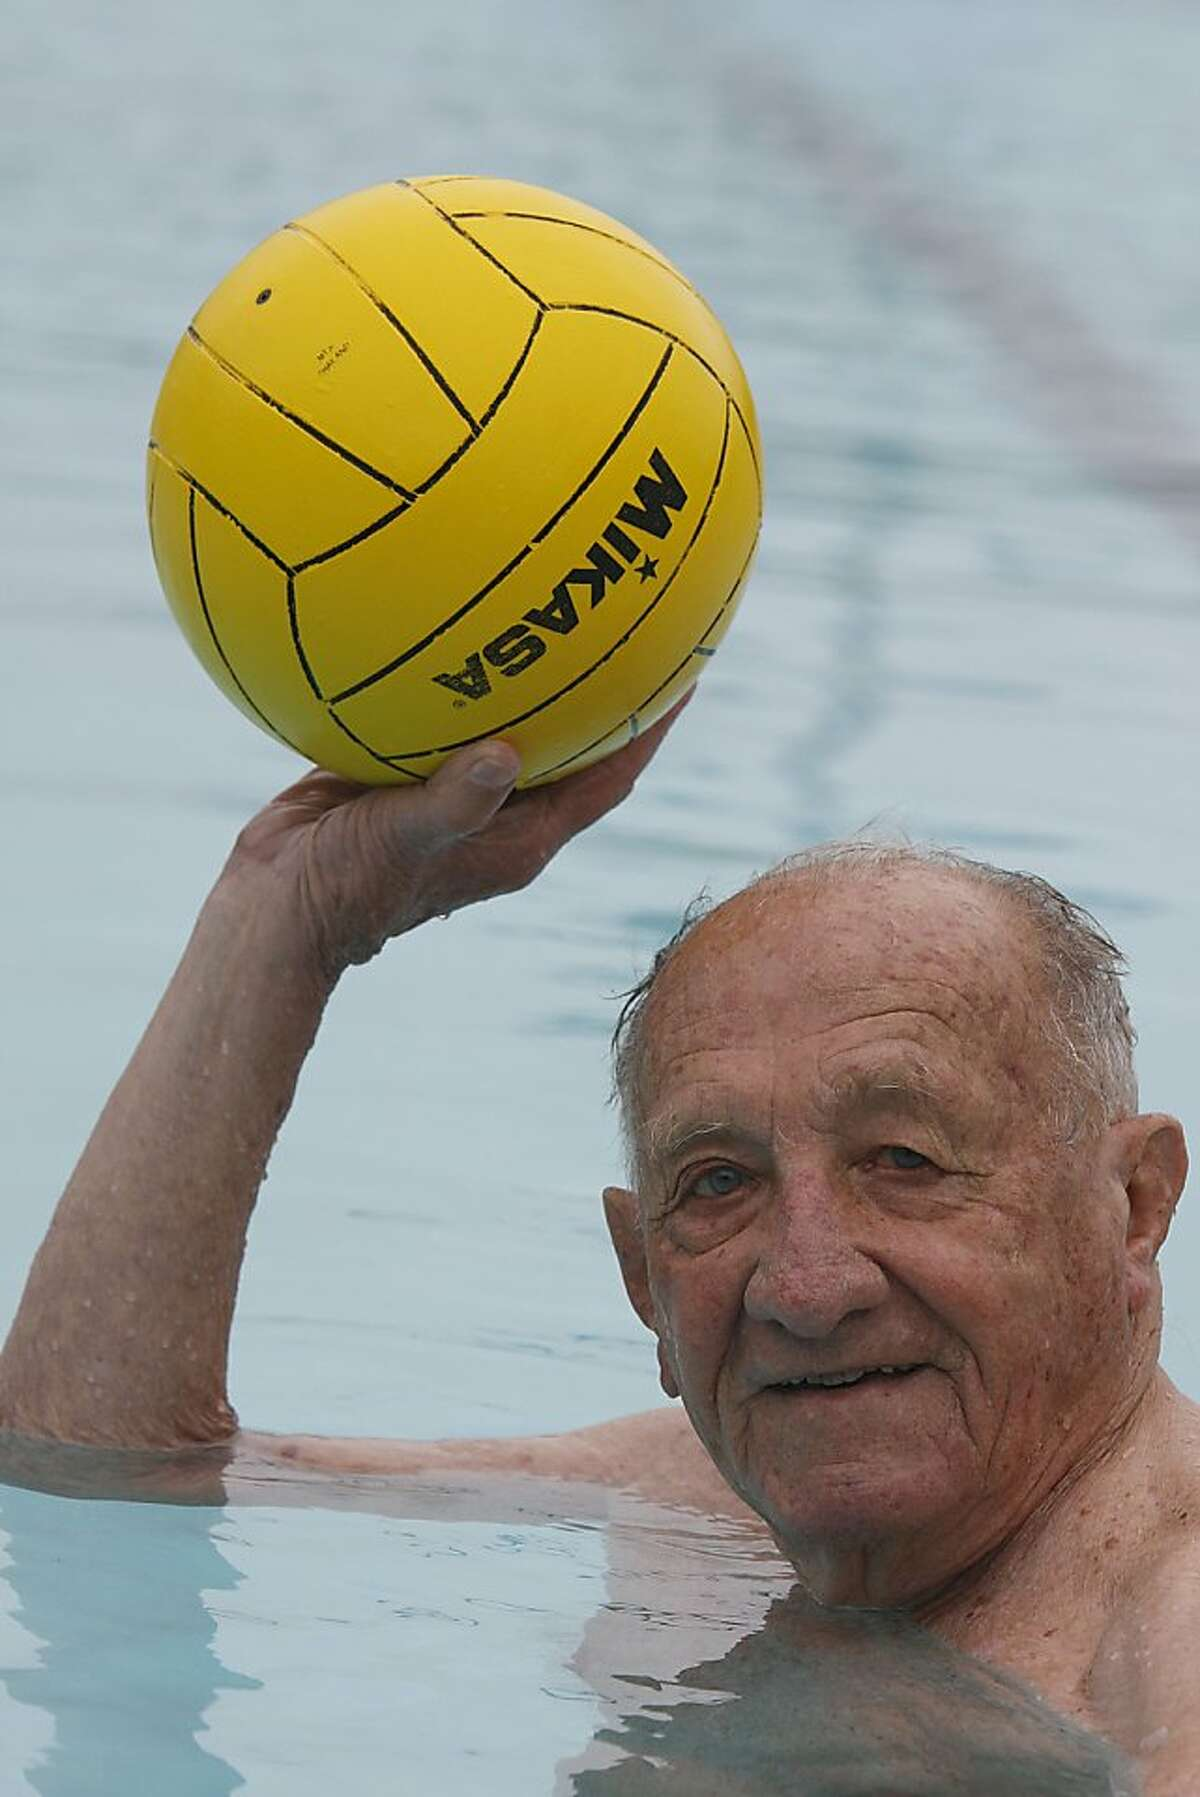 Alex Tarics, 98 years old, throws a ball during a morning swim at Belvedere Tennis Club in Tiburon, Calif., on Thursday, May 3, 2012. Alex is the oldest living olympic gold medalist. He won the medal playing water polo during the 1936 olympics .